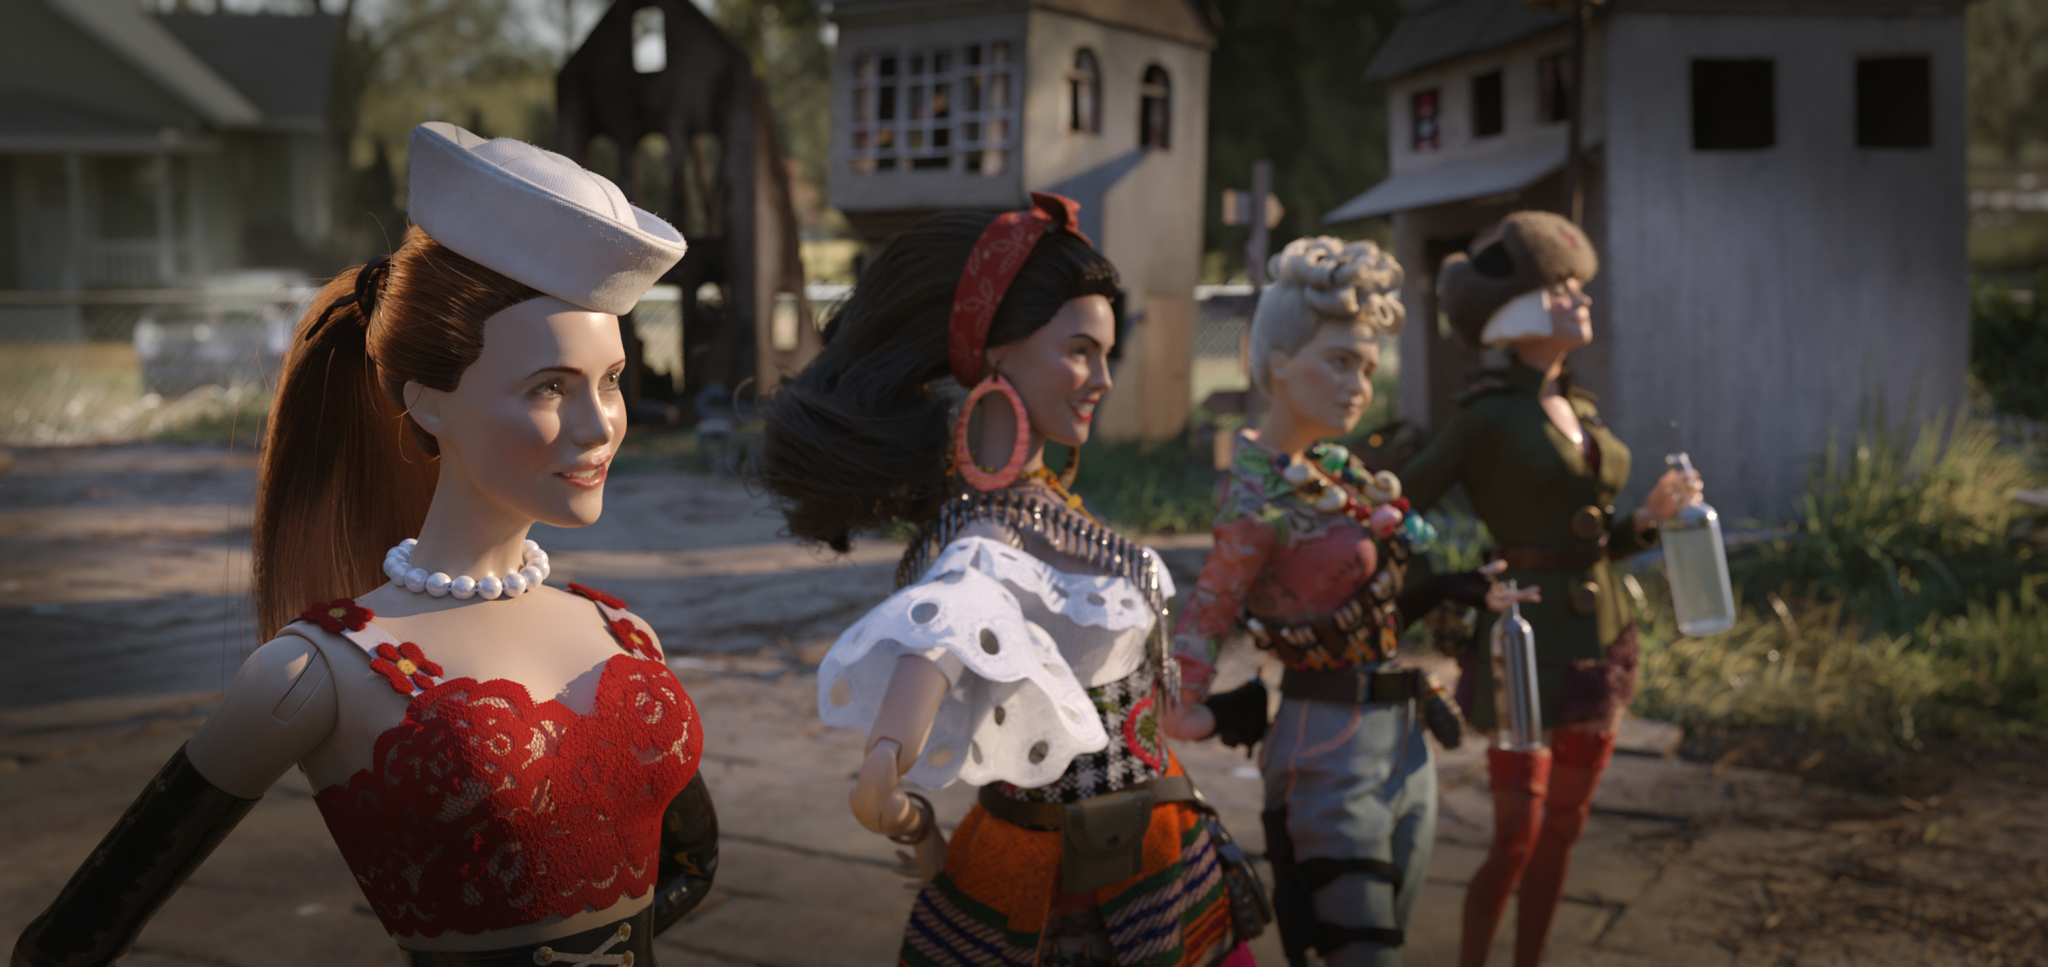 Leslie Mann, Merritt Wever, Eiza González, and Gwendoline Christie in Welcome to Marwen (2018)